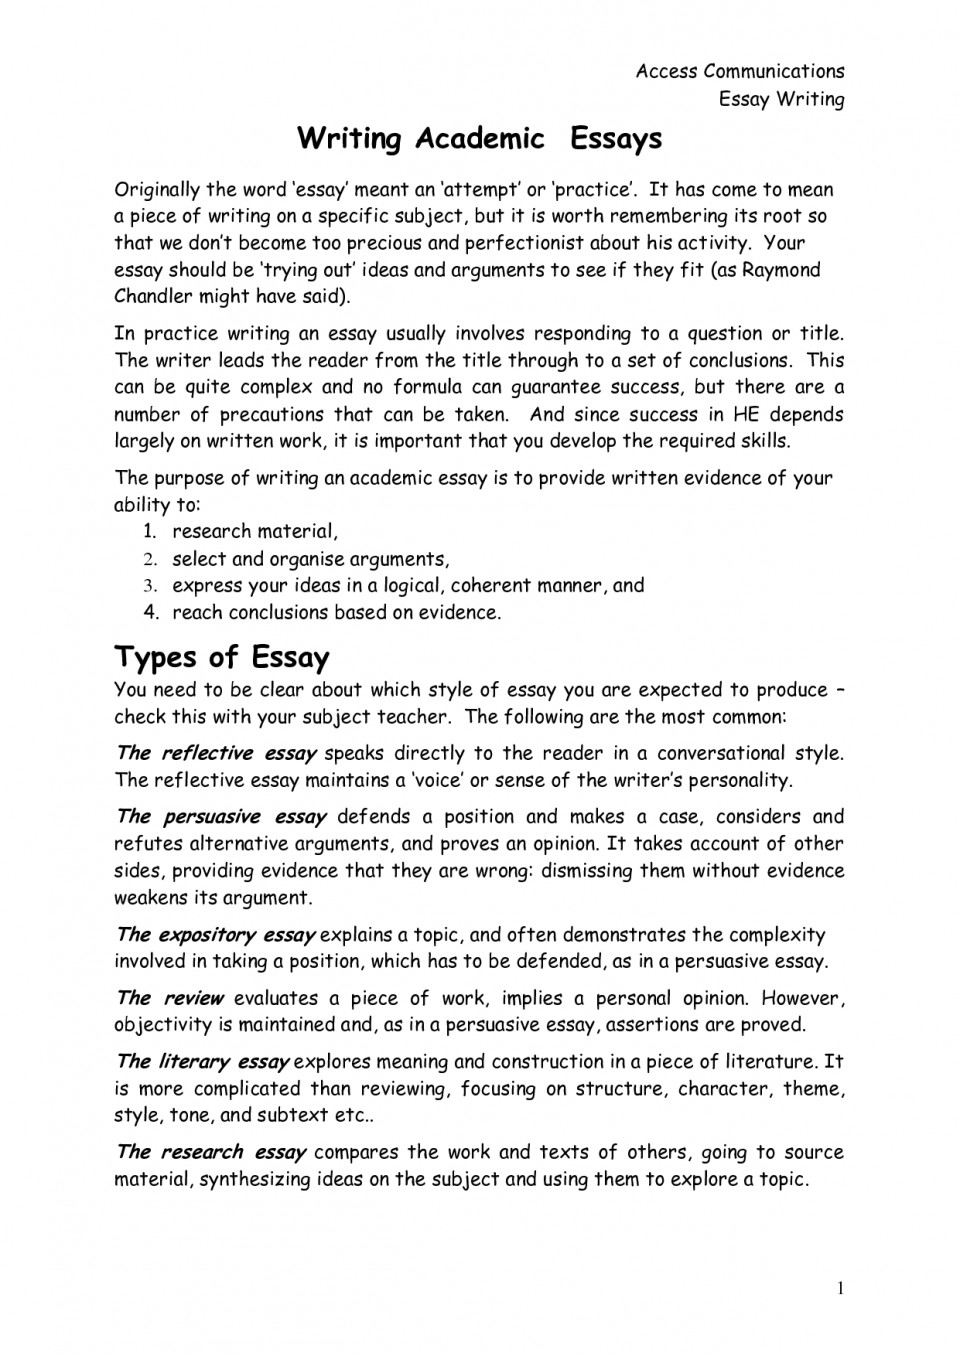 017 Essay Example Write For Me Amazing My Generator Free Online 960